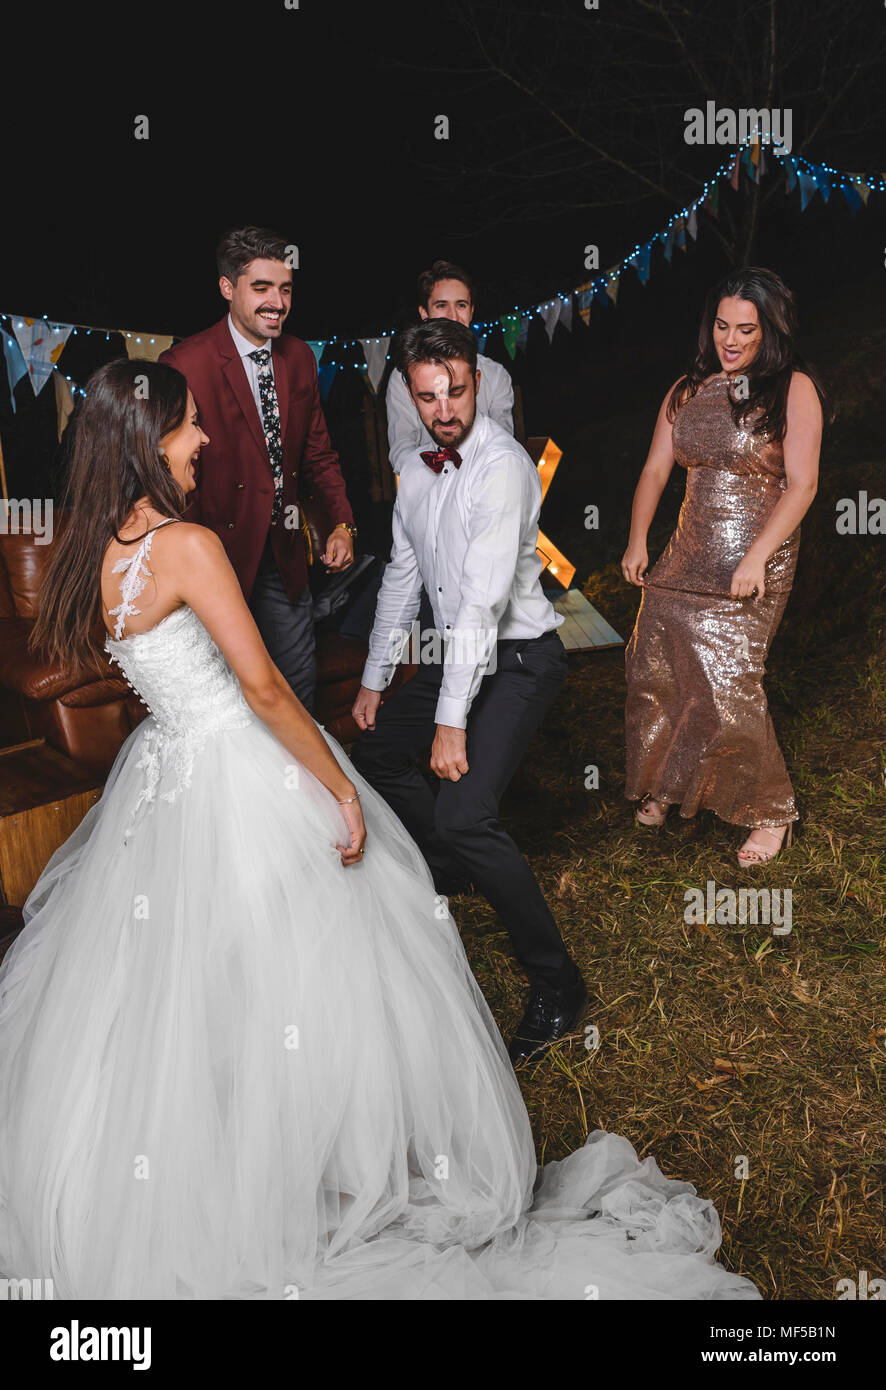 Happy bride dancing and having fun with her friends on a night field party - Stock Image